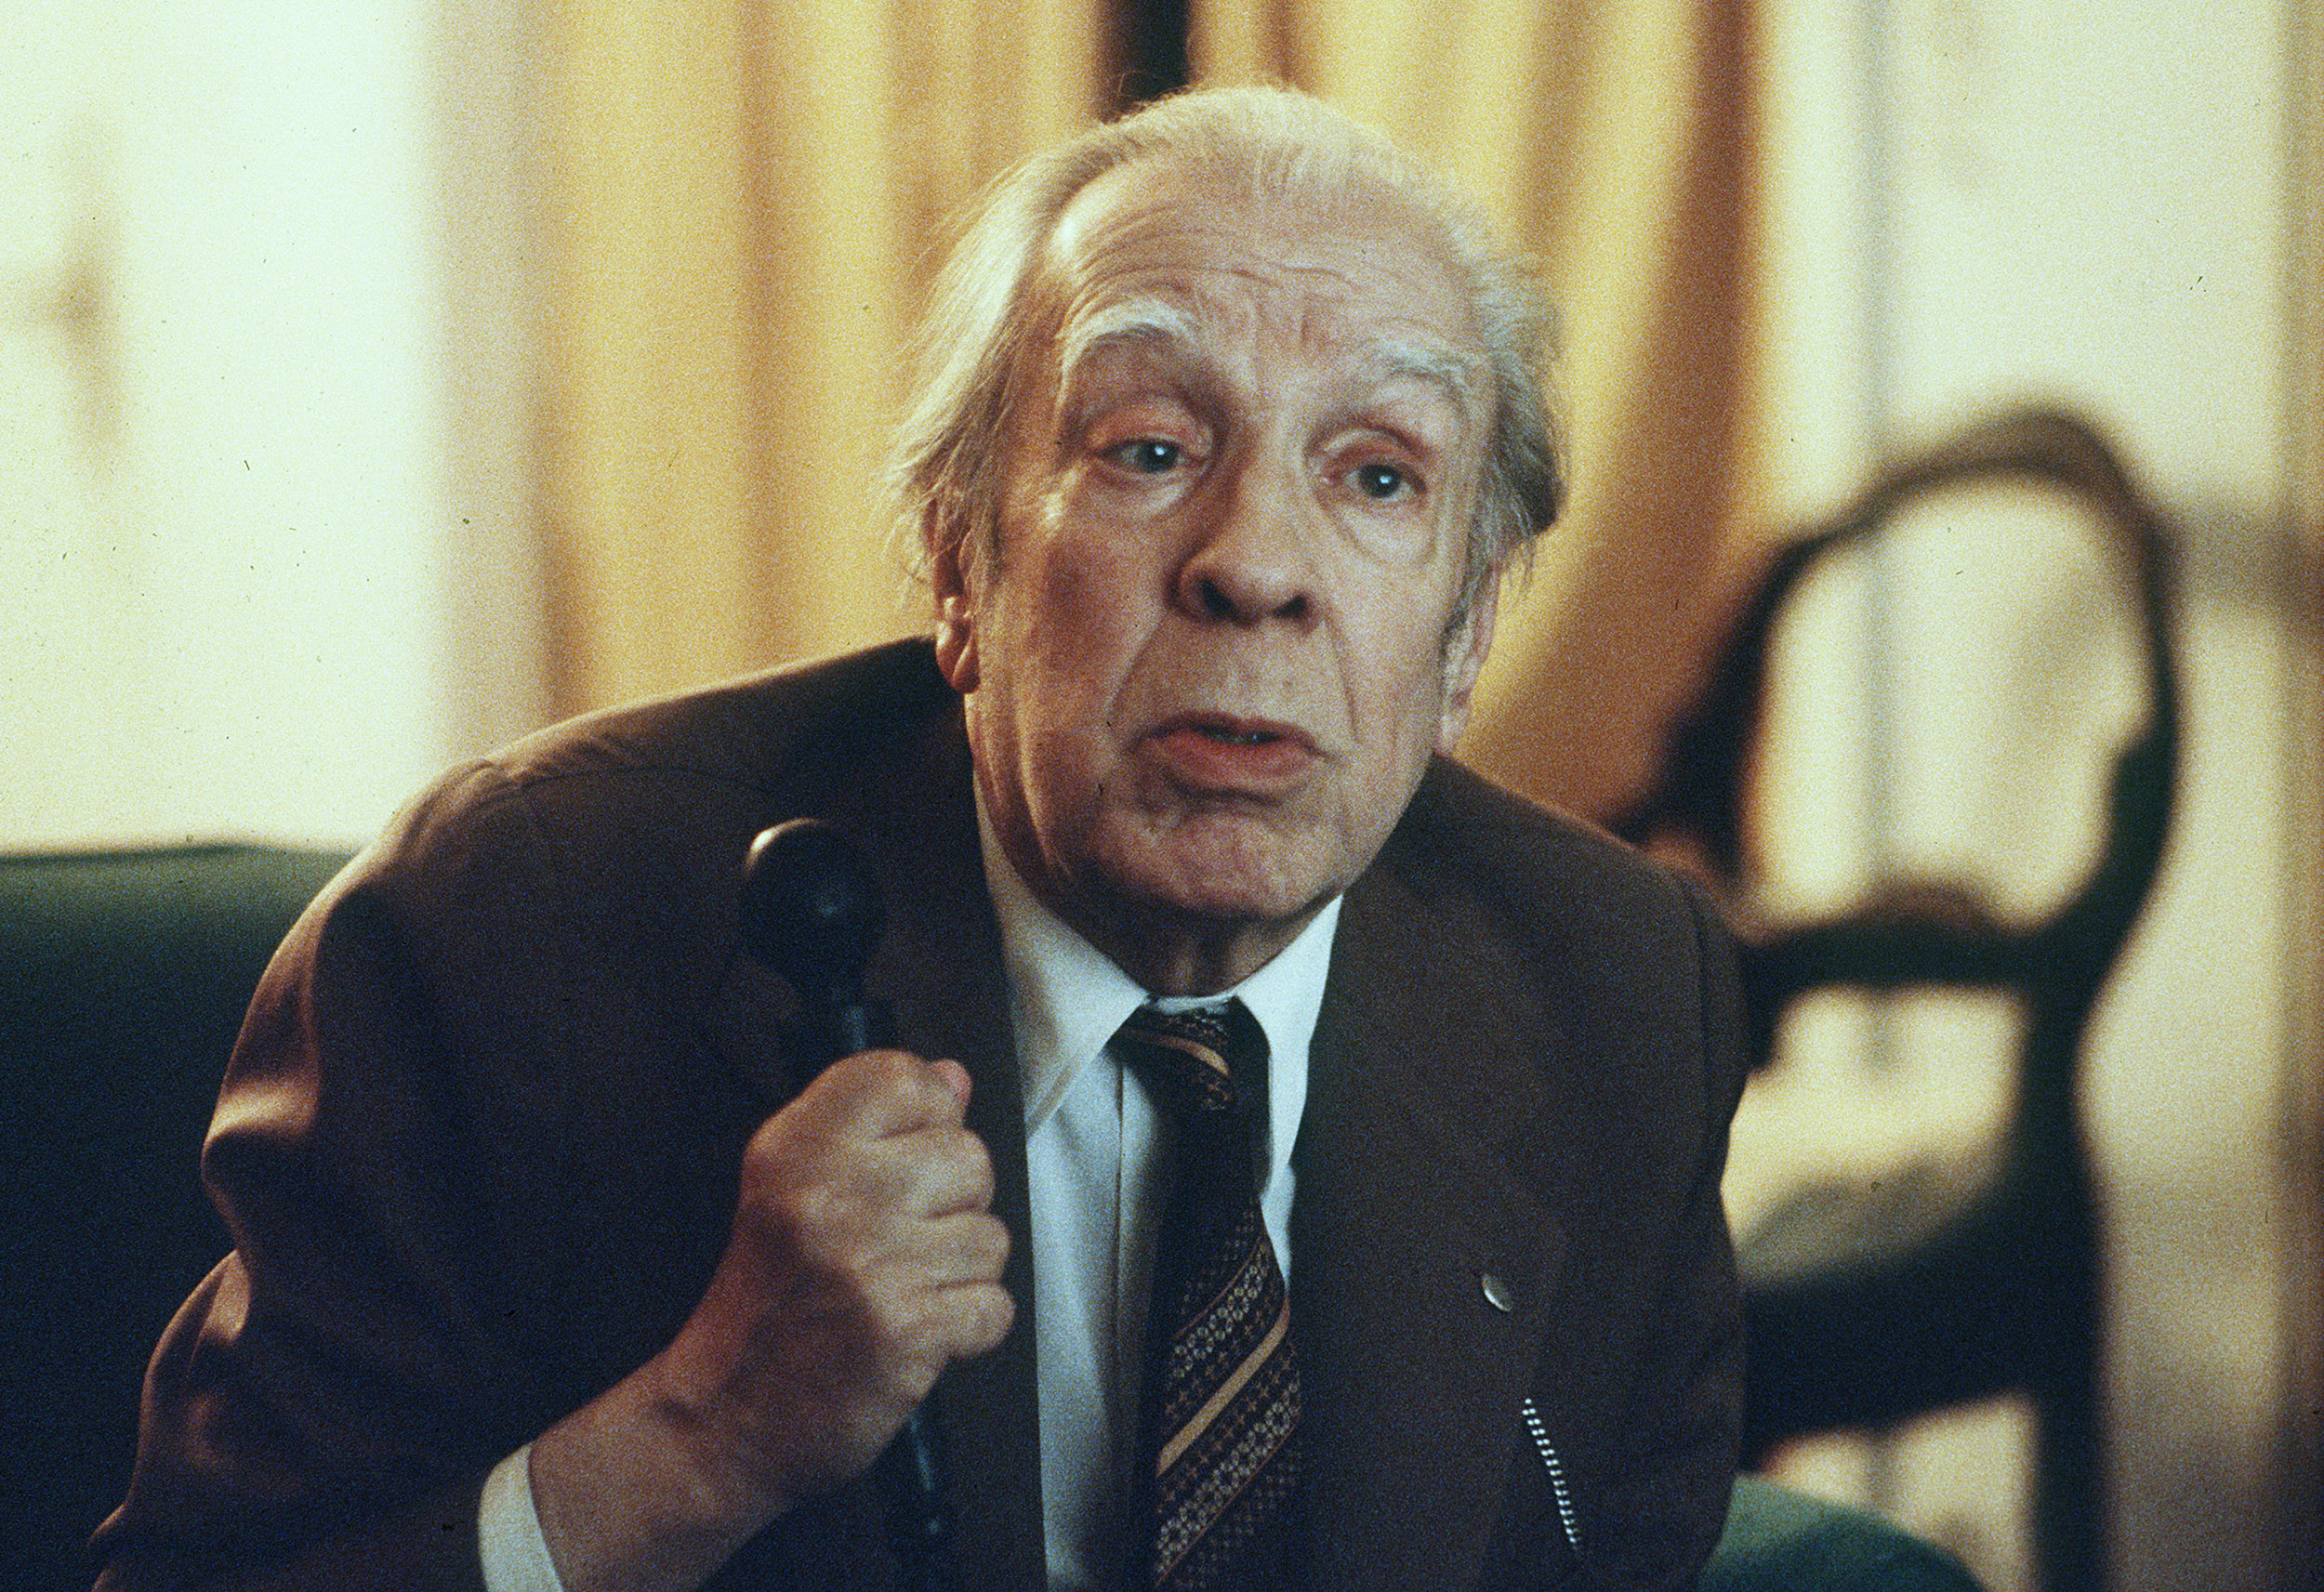 FILE - In this Nov. 20, 1981 file photo, Argentina's writer Jorge Luis Borges talks in his Buenos Aires apartment. Borges, Julio Cortazar, and Juan Gelman, three exiled Argentine greats of twentieth century Hispanic literature were deeply committed to their country. However all three died on foreign soil. Cortazar died in Paris in 1984, Borges in Geneva two years later and Gelman in Mexico City in early 2014. (AP Photo/Eduardo Di Baia, File)